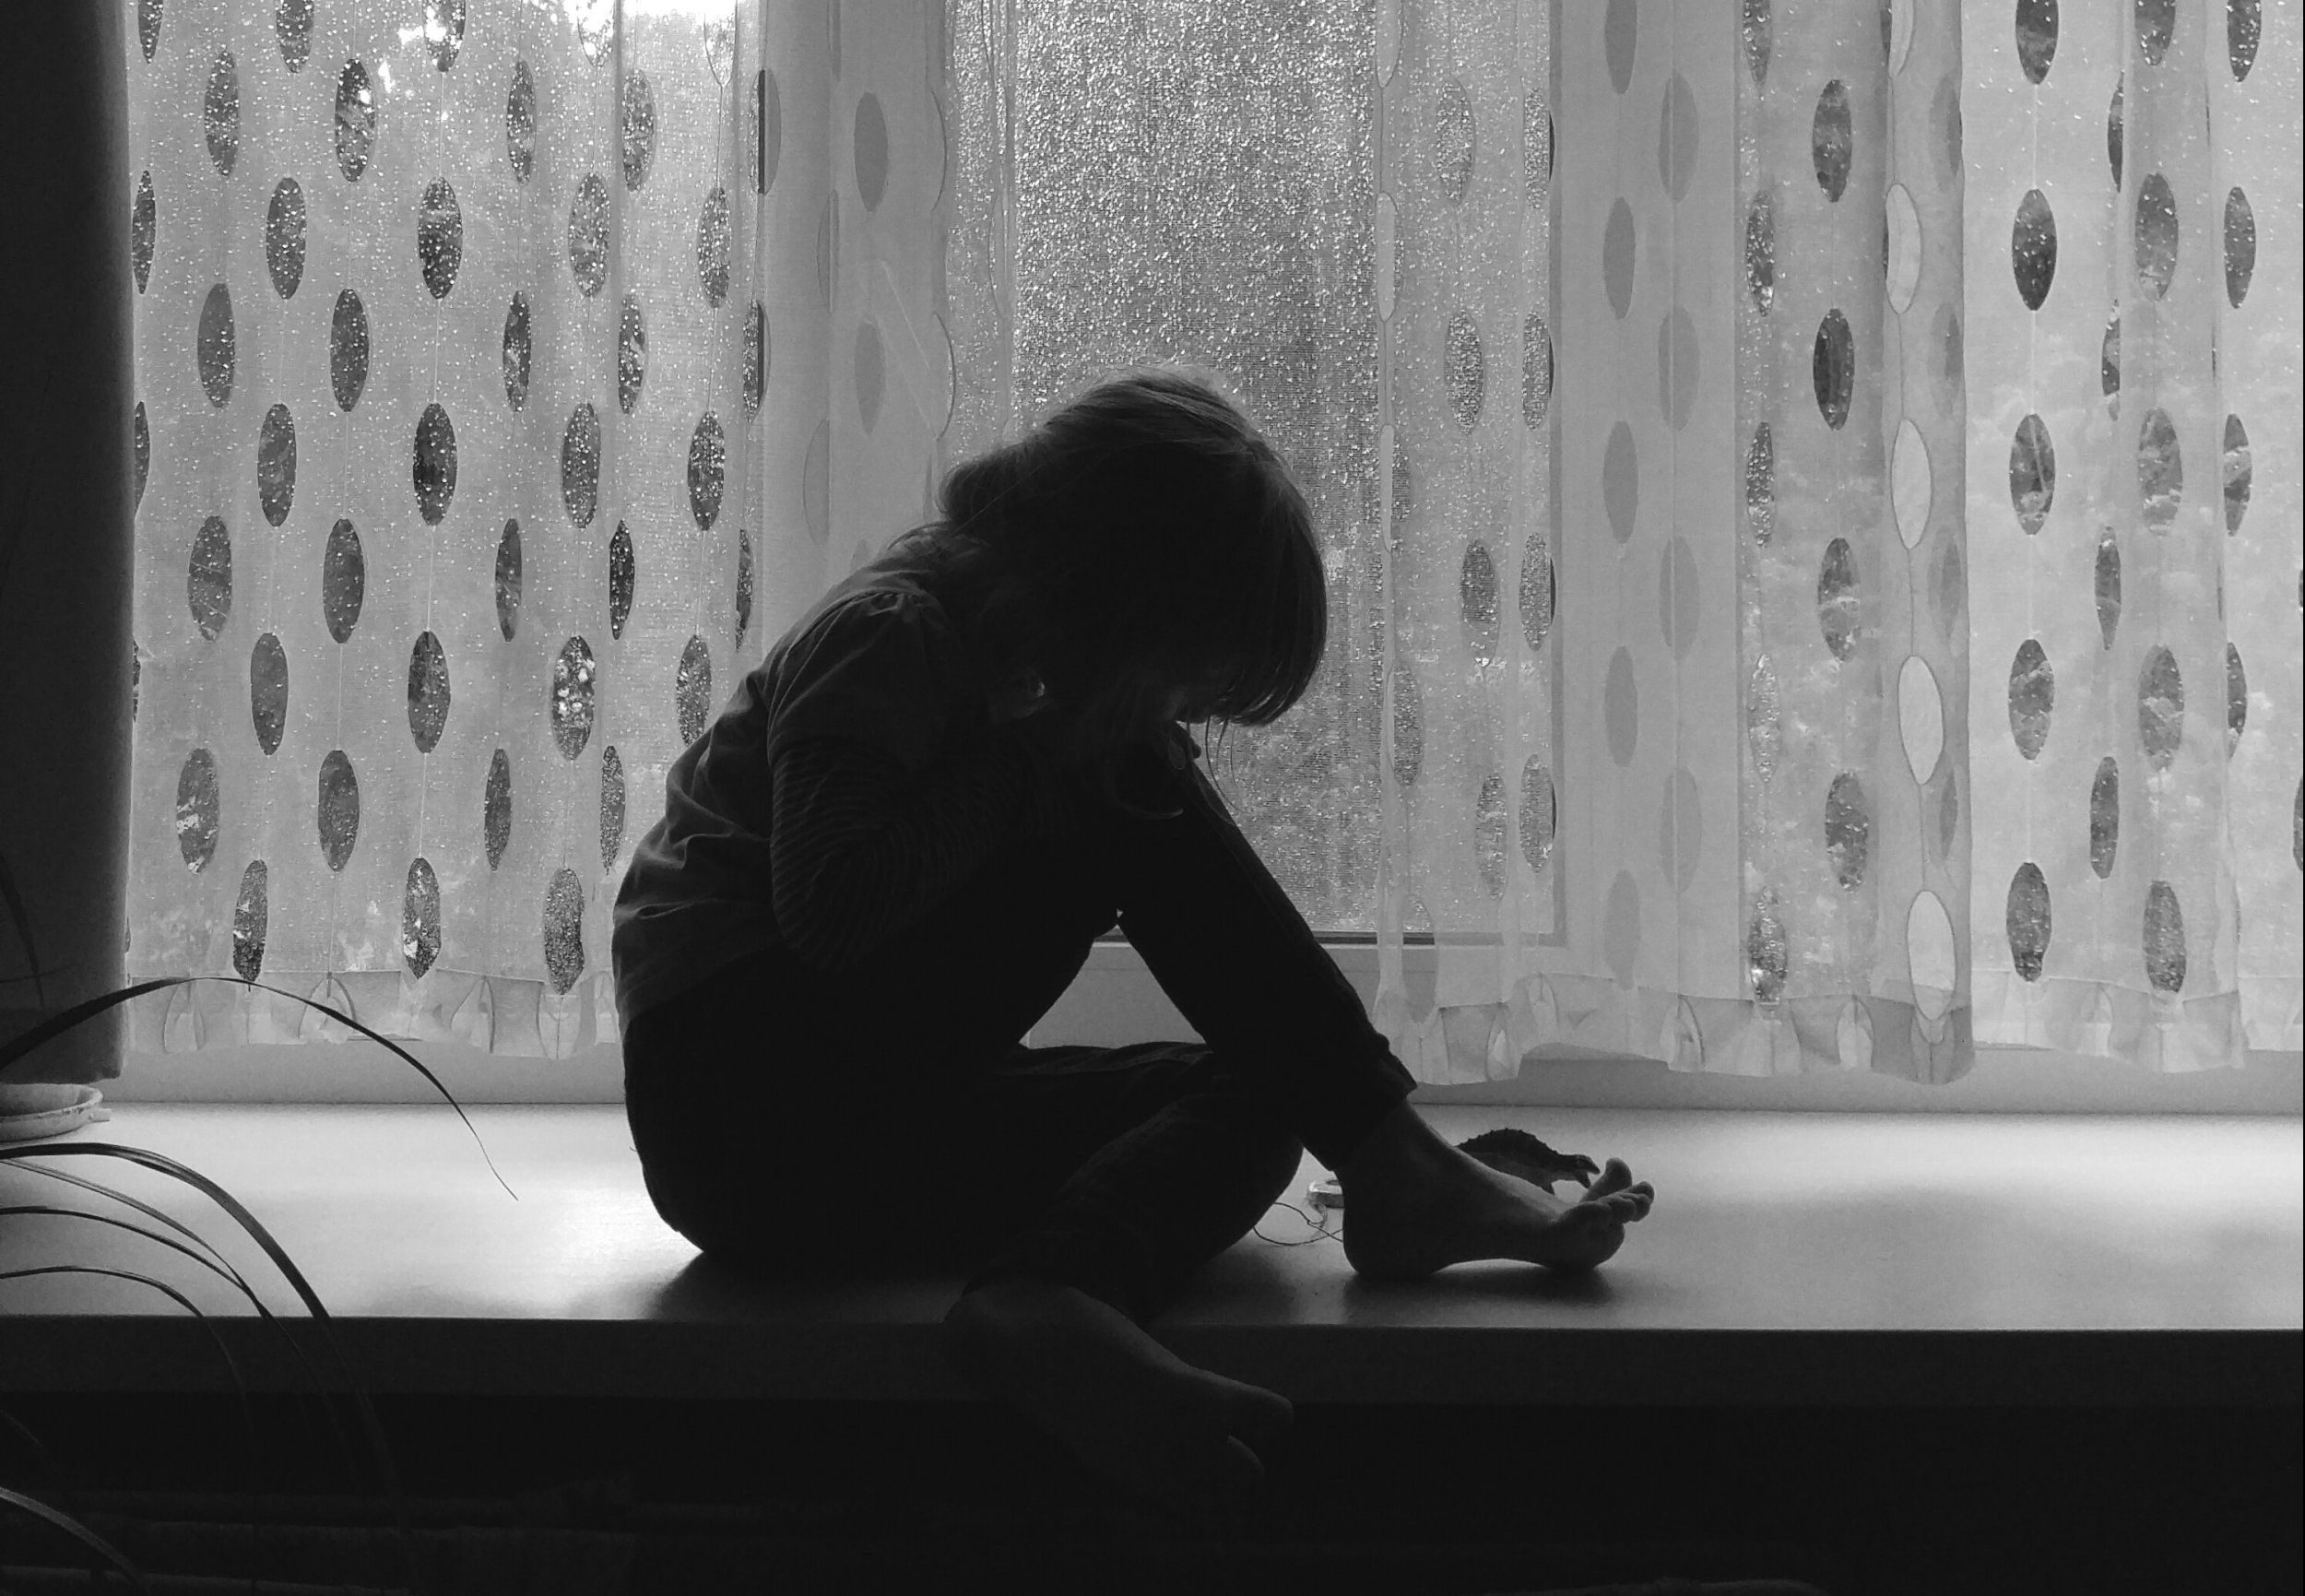 Record number of children seeking help for suicidal thoughts